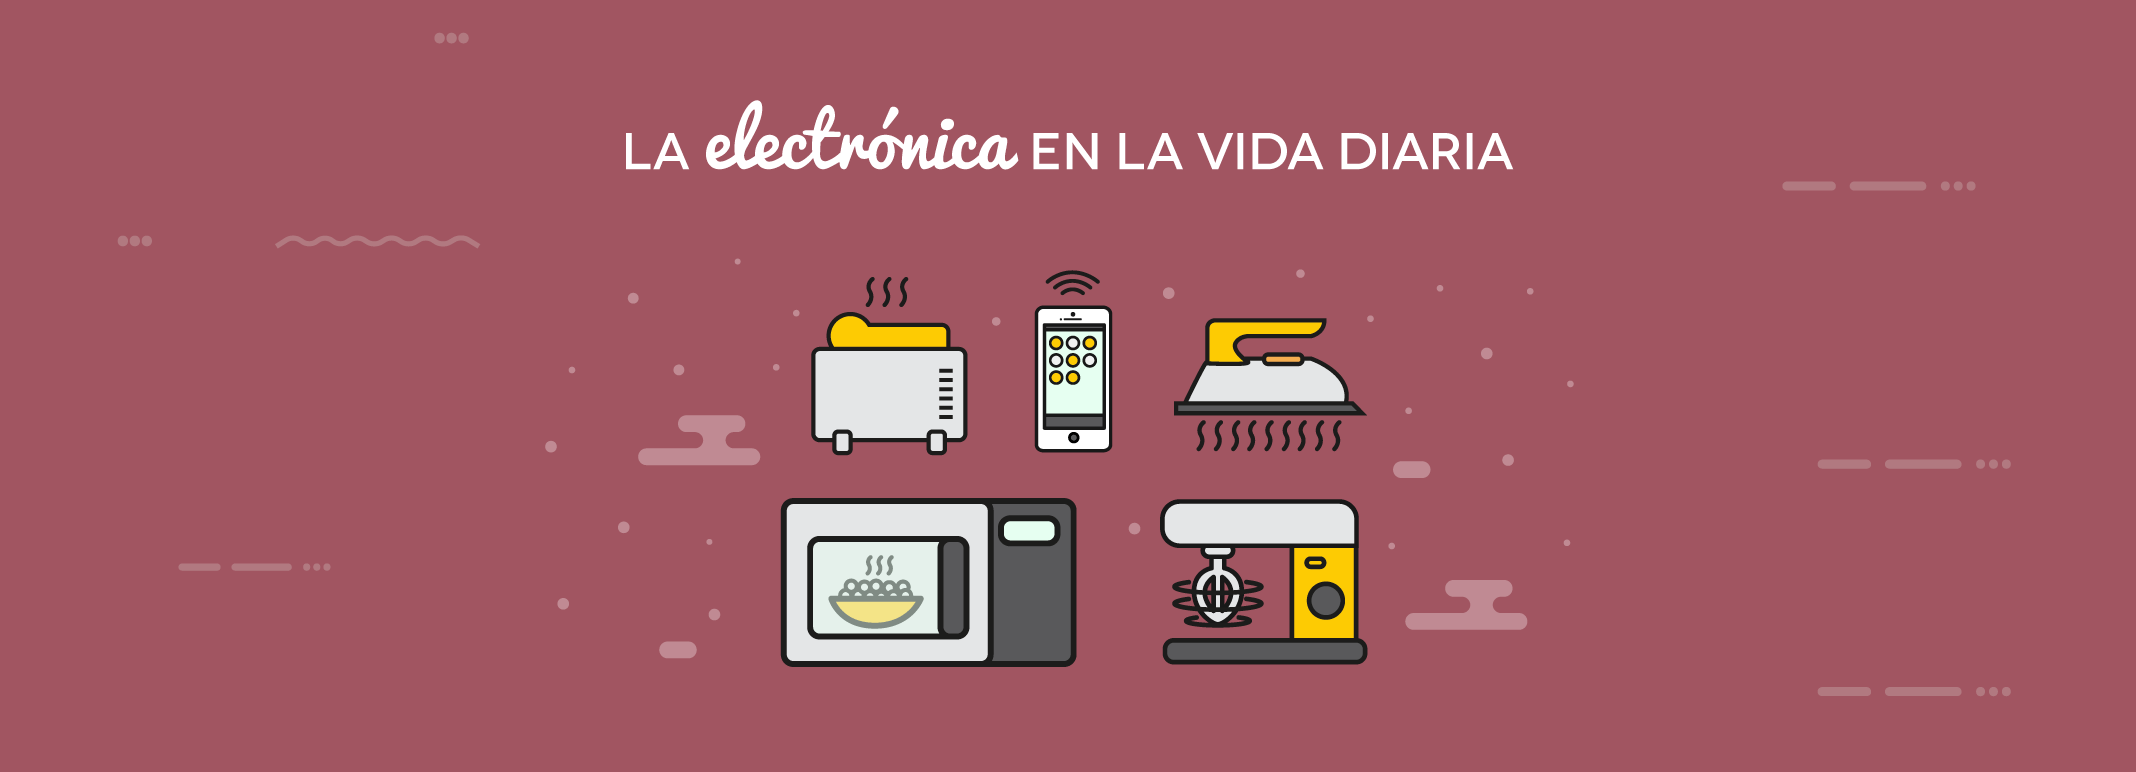 Electronica Medium Font La Electrónica En La Vida Diaria Funktionell Medium